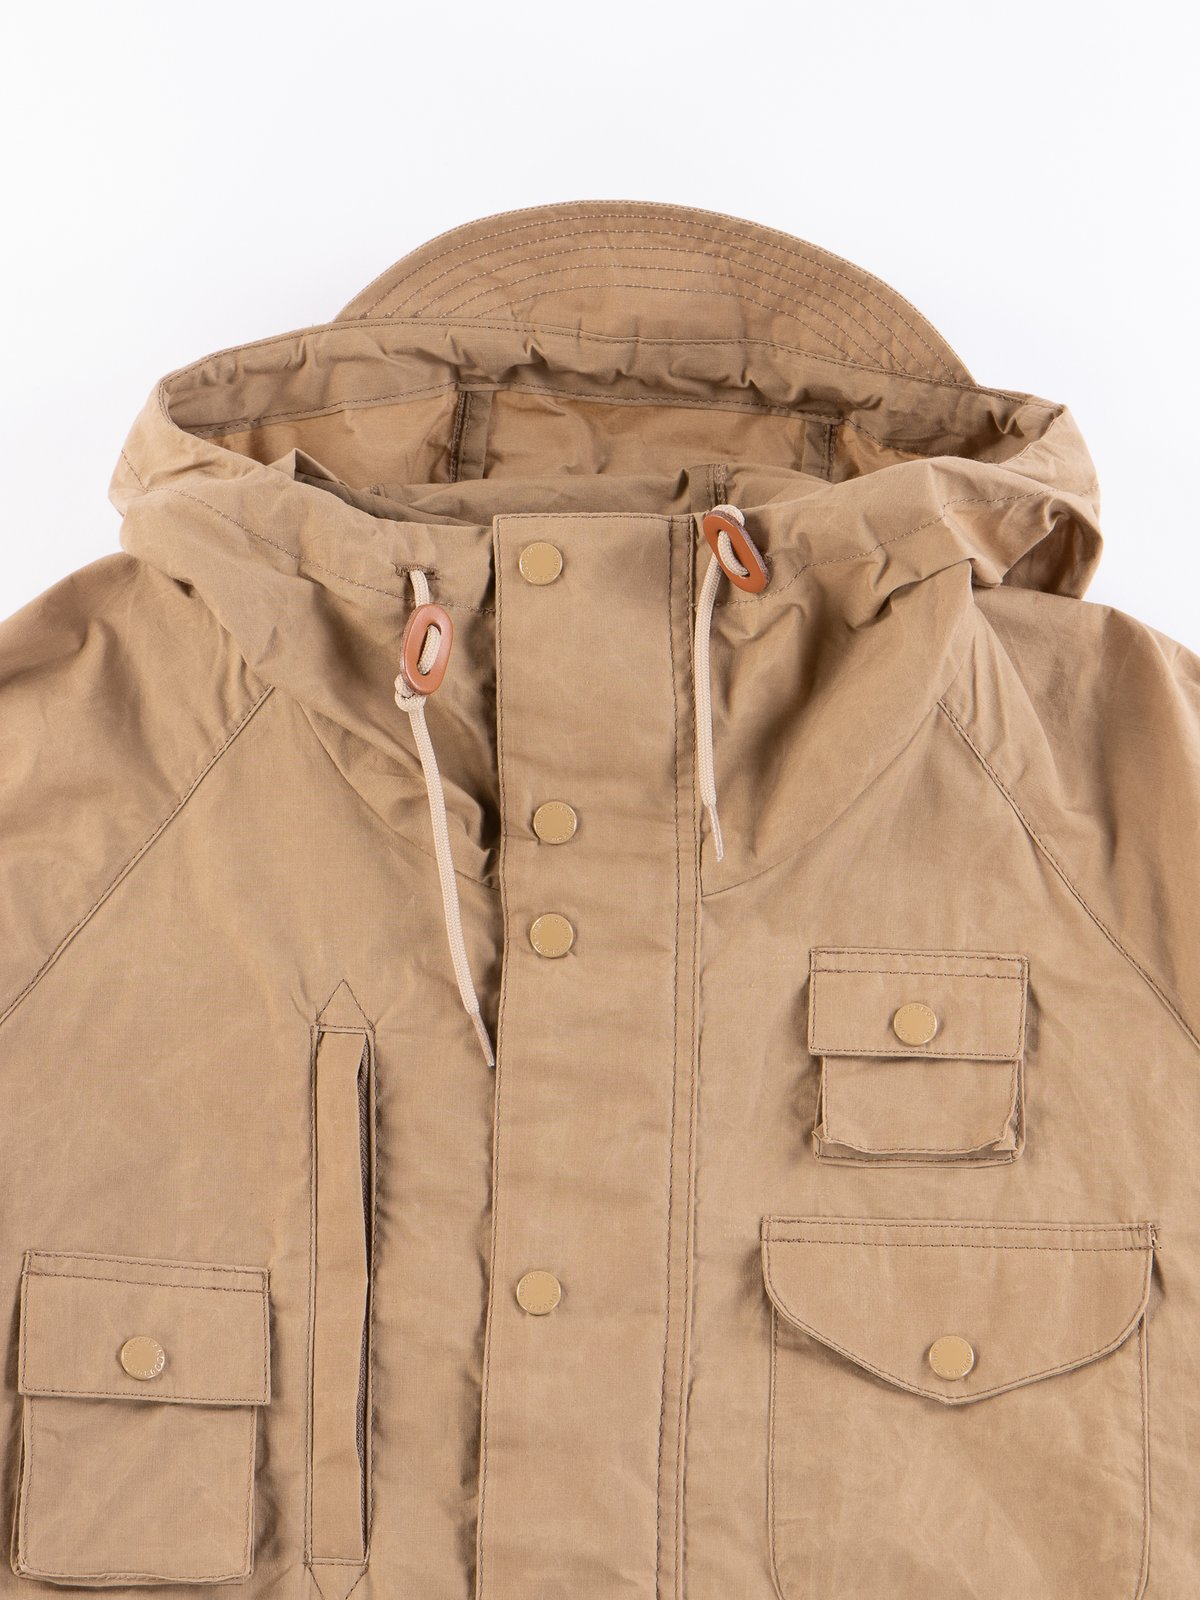 Sand Thompson Jacket - Image 3